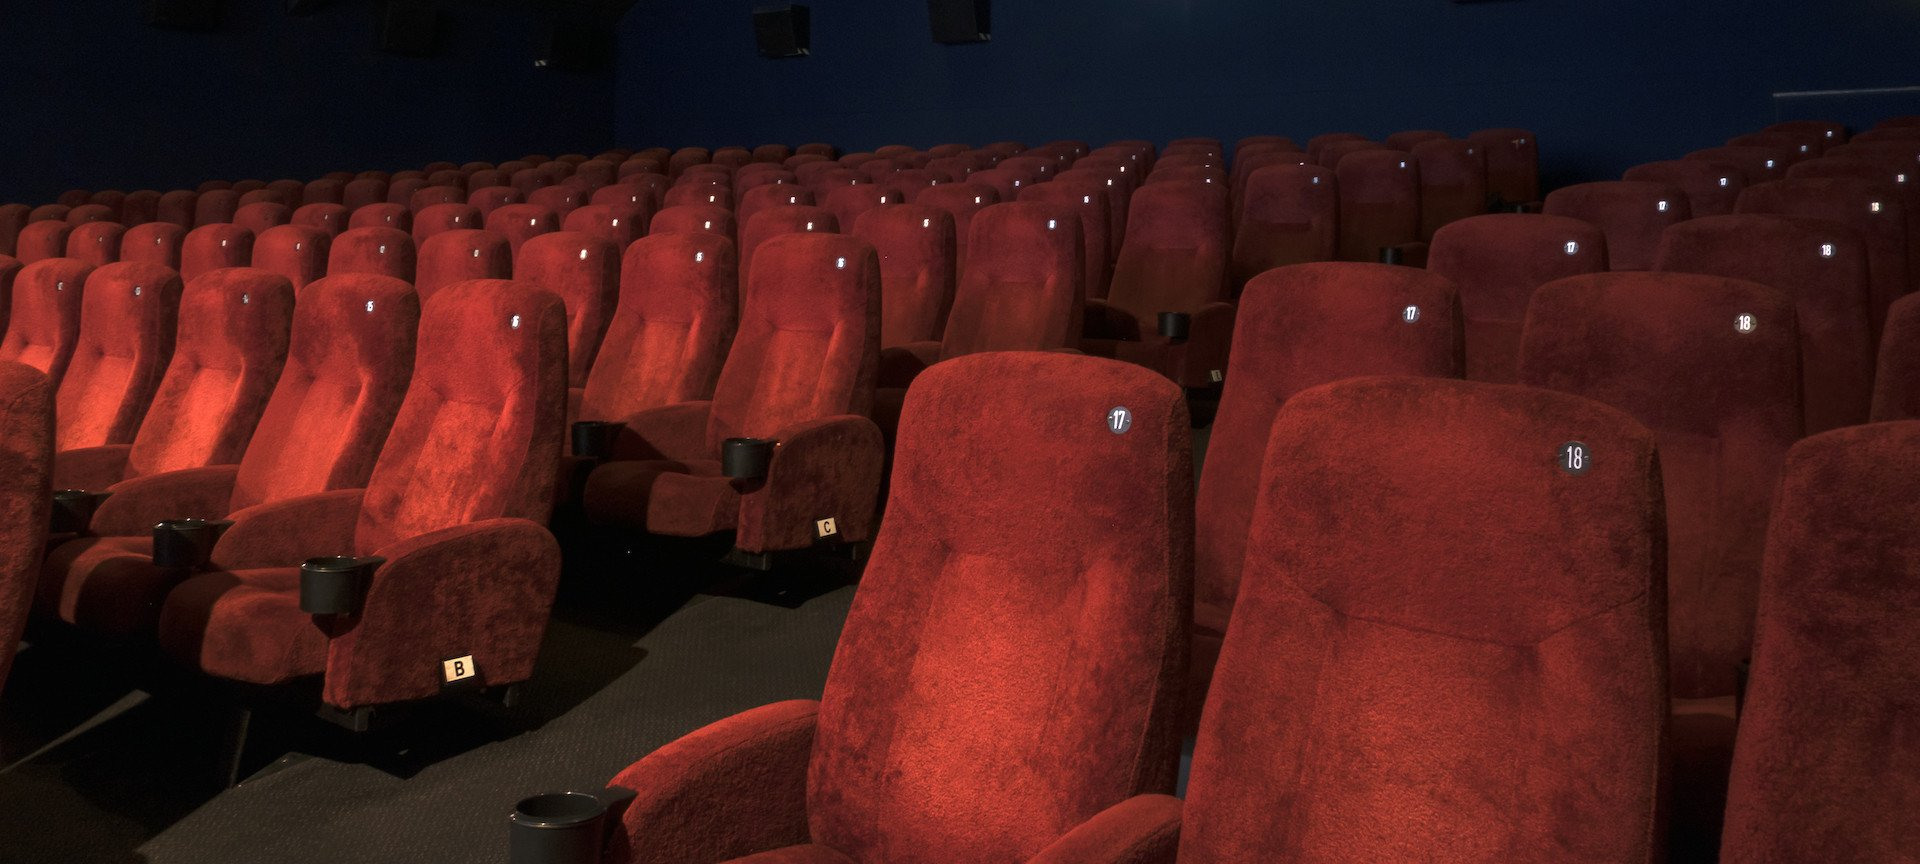 Venue And Event Hire<br>At Clapham Picturehouse